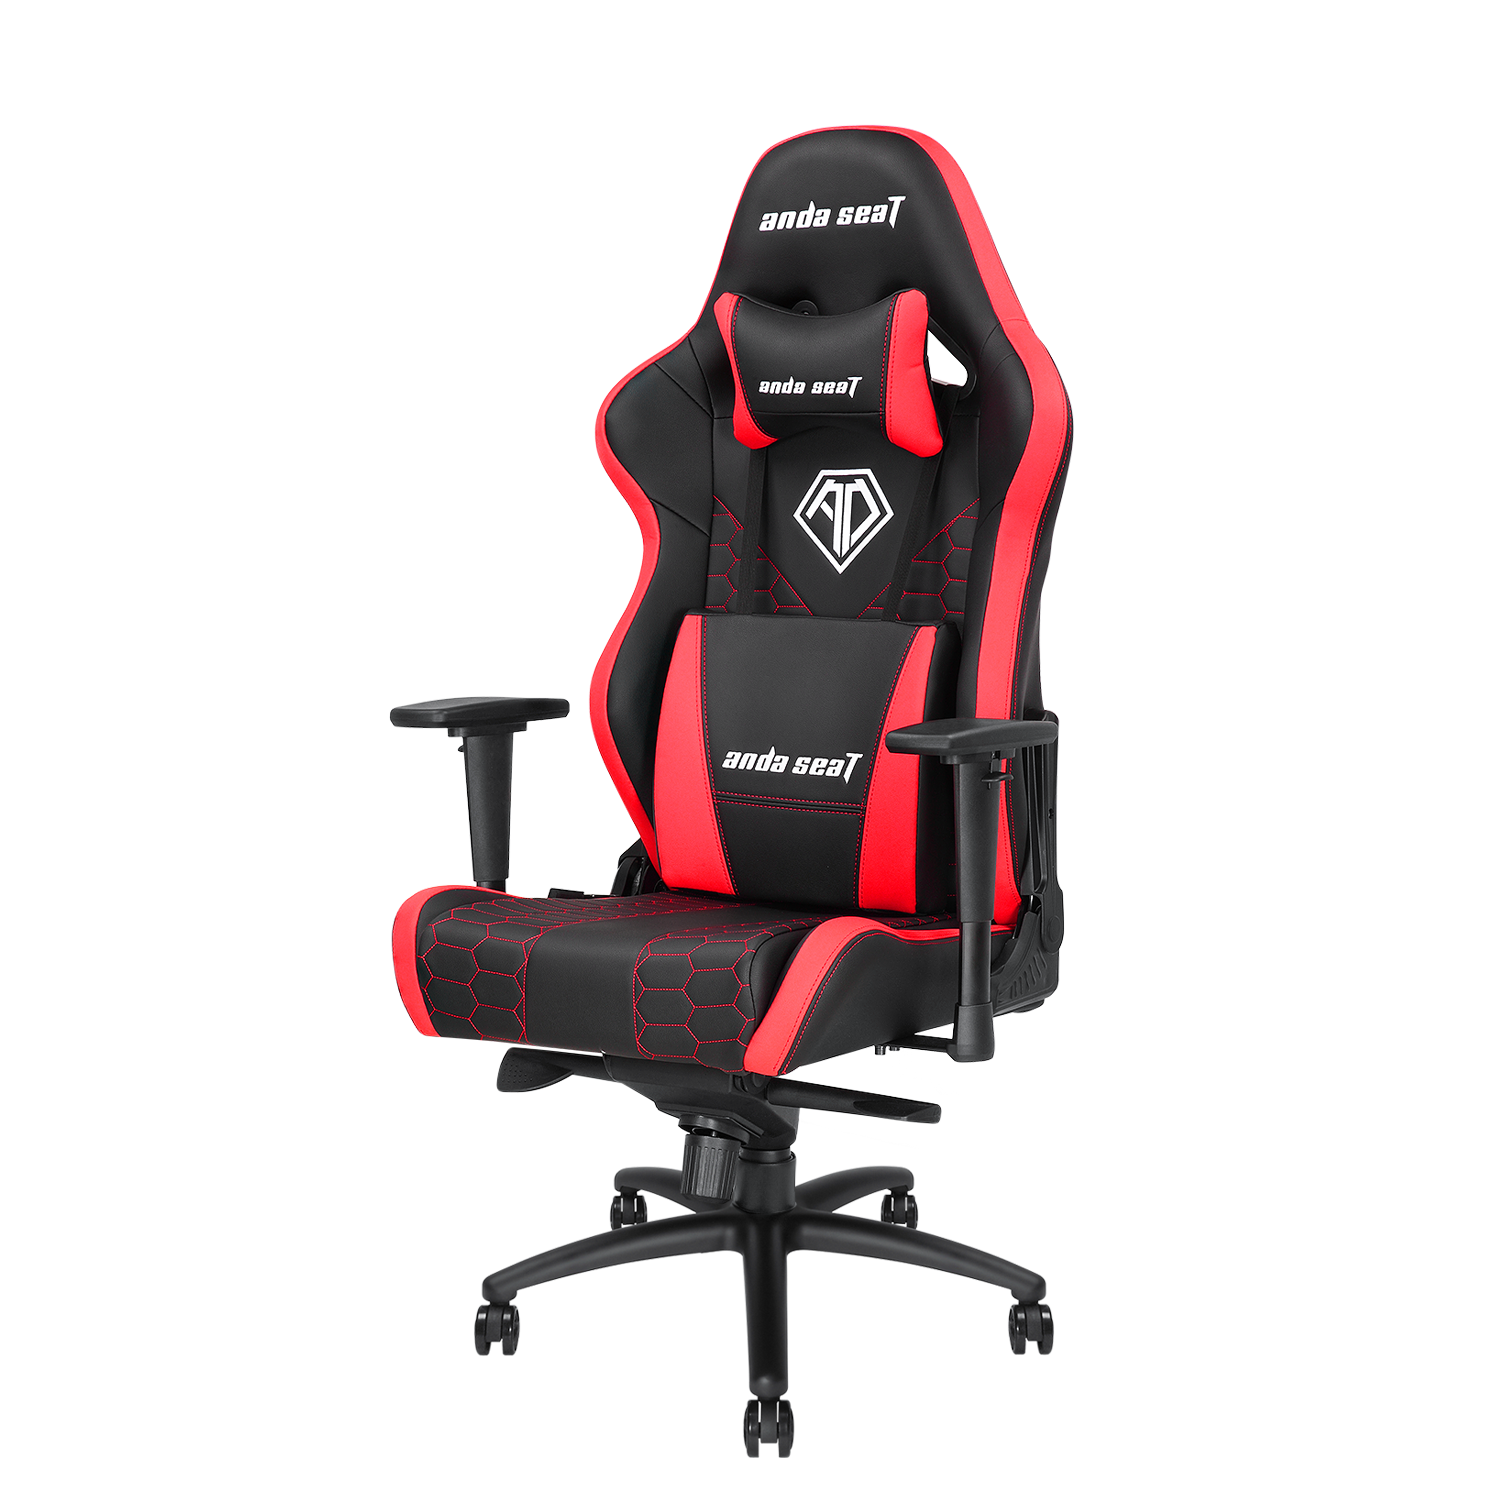 Spirit King Gaming Chair-Low Price